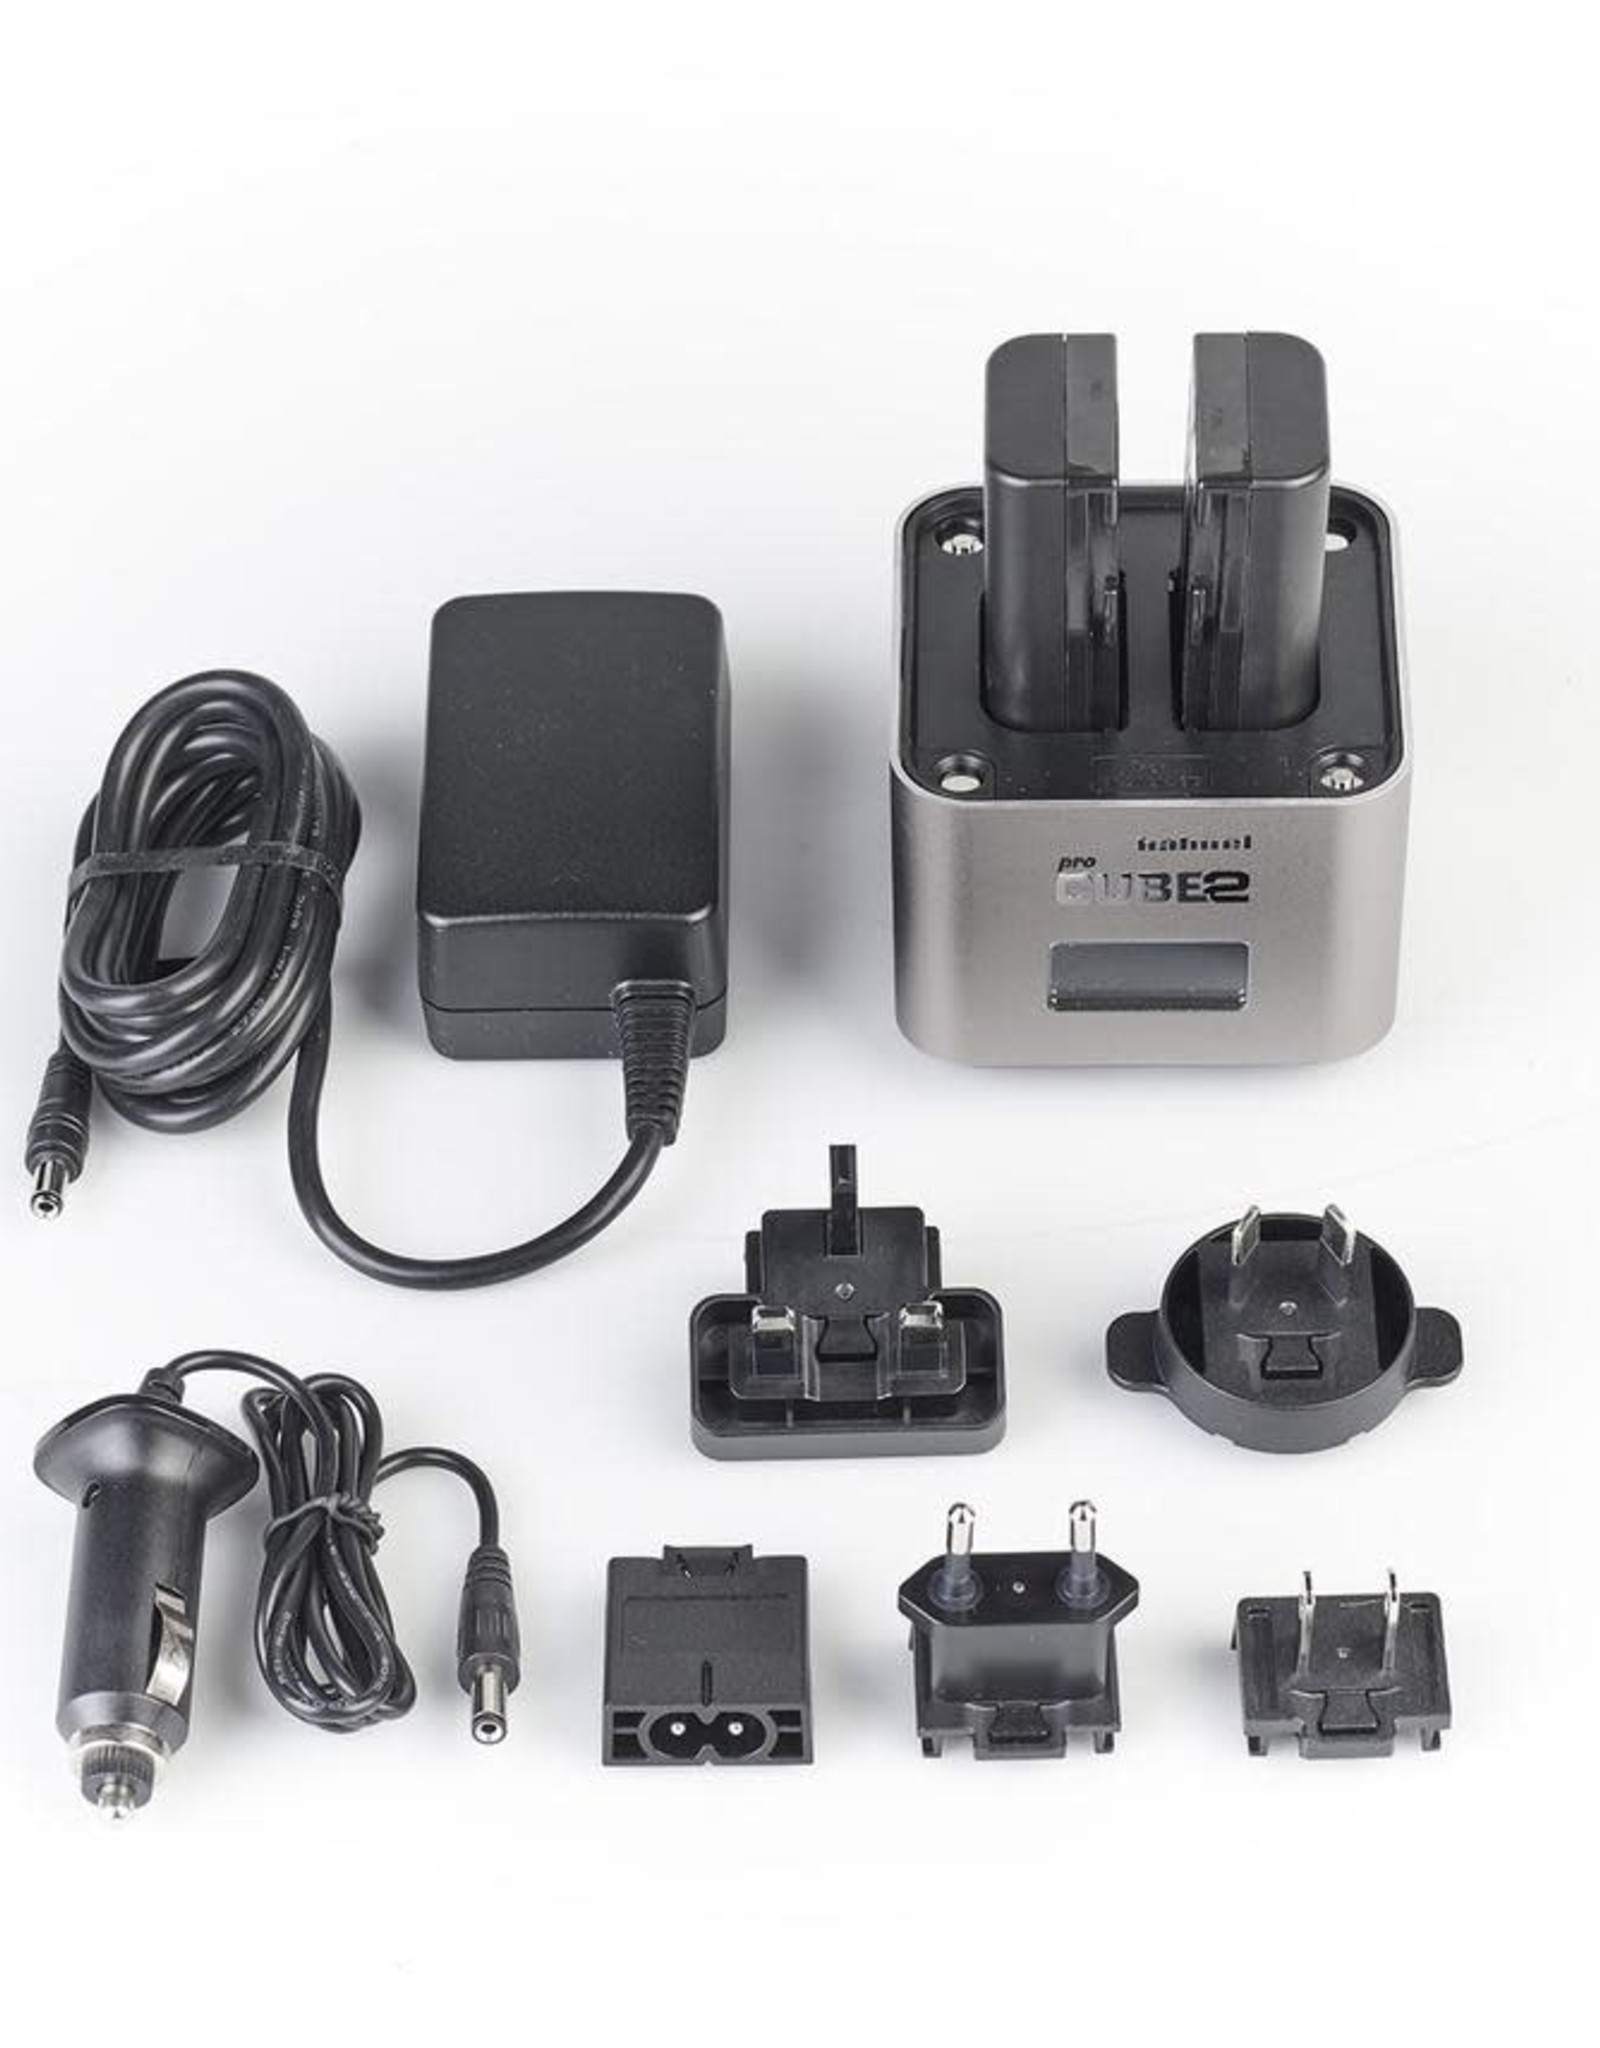 Phase One Phase One Hähnel Pro Cube 2 Charger for IQ and XF batteries (Supplied with IQ4 Backs/Systems)